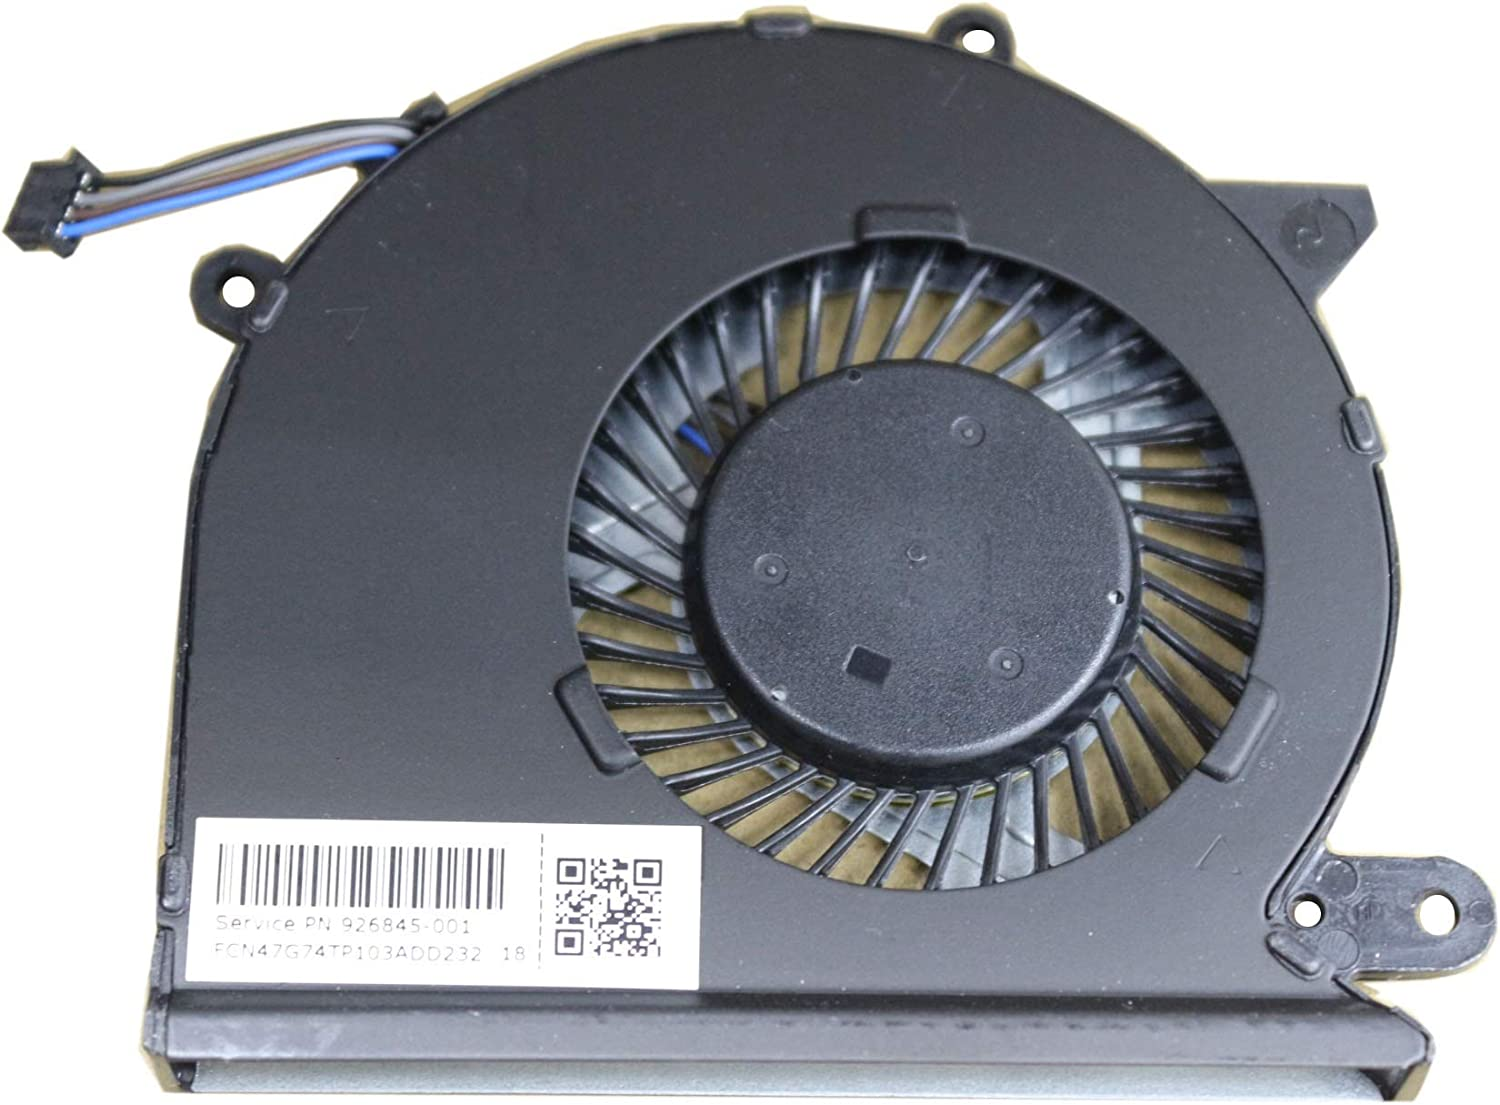 GIVWIZD Laptop Replacement CPU Cooling Fan for HP Pavilion 15-CC552tx 15-CC553cl 15-CC554nr 15-CC555nr 15-CC561st 15-CC563st